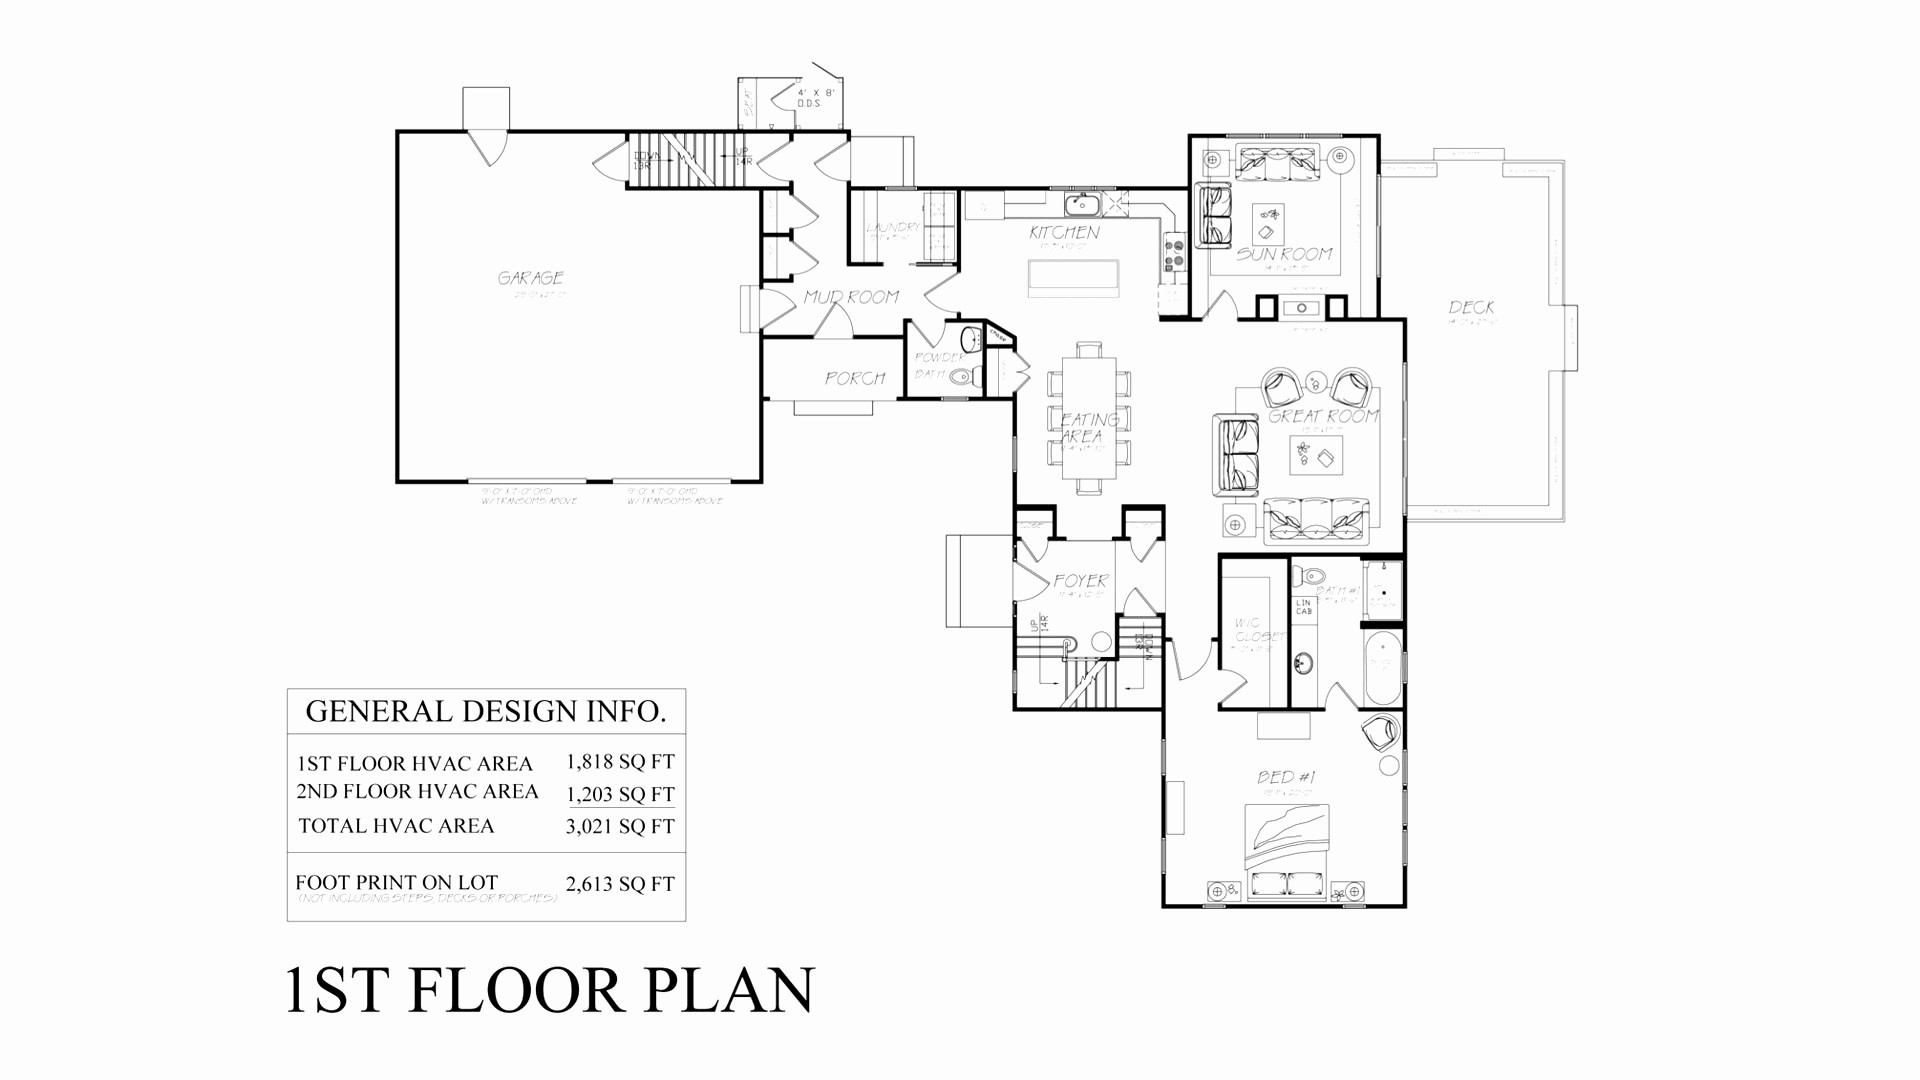 hardwood floor maintenance crossword clue of floor crossword clue barn house floor plans elegant cottage house for floor crossword clue barn house floor plans elegant cottage house plans plan e story